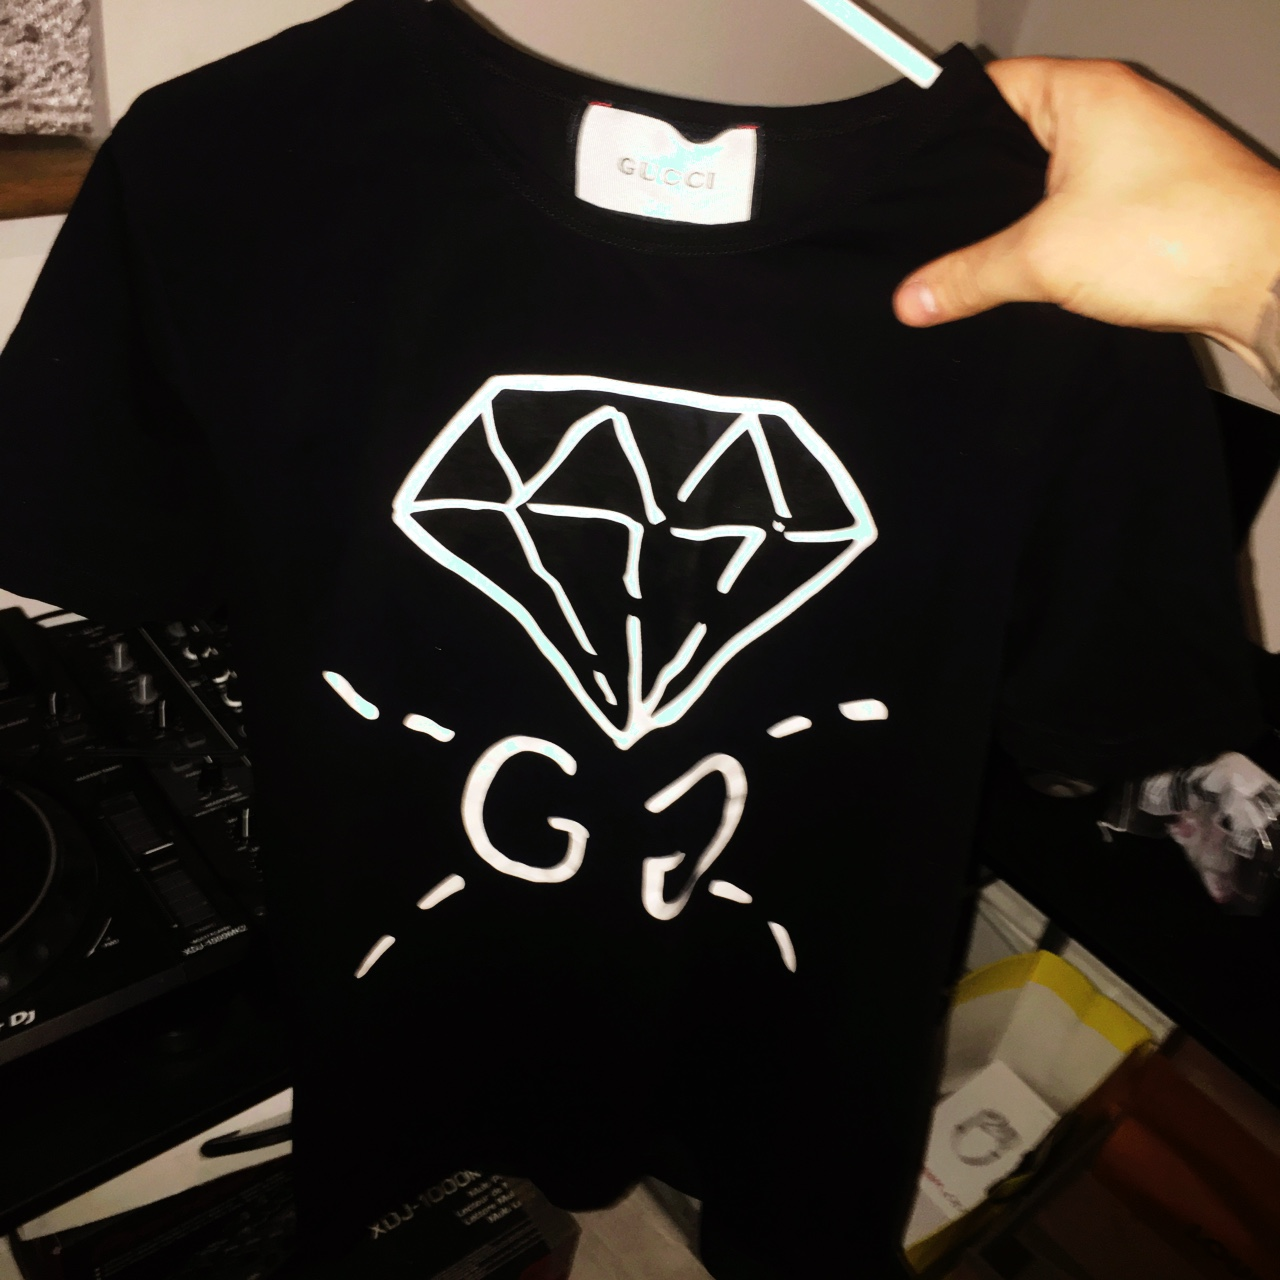 3be3ba5aaf6  samlondon95. last year. United Kingdom. Gucci Ghost - diamond tshirt.